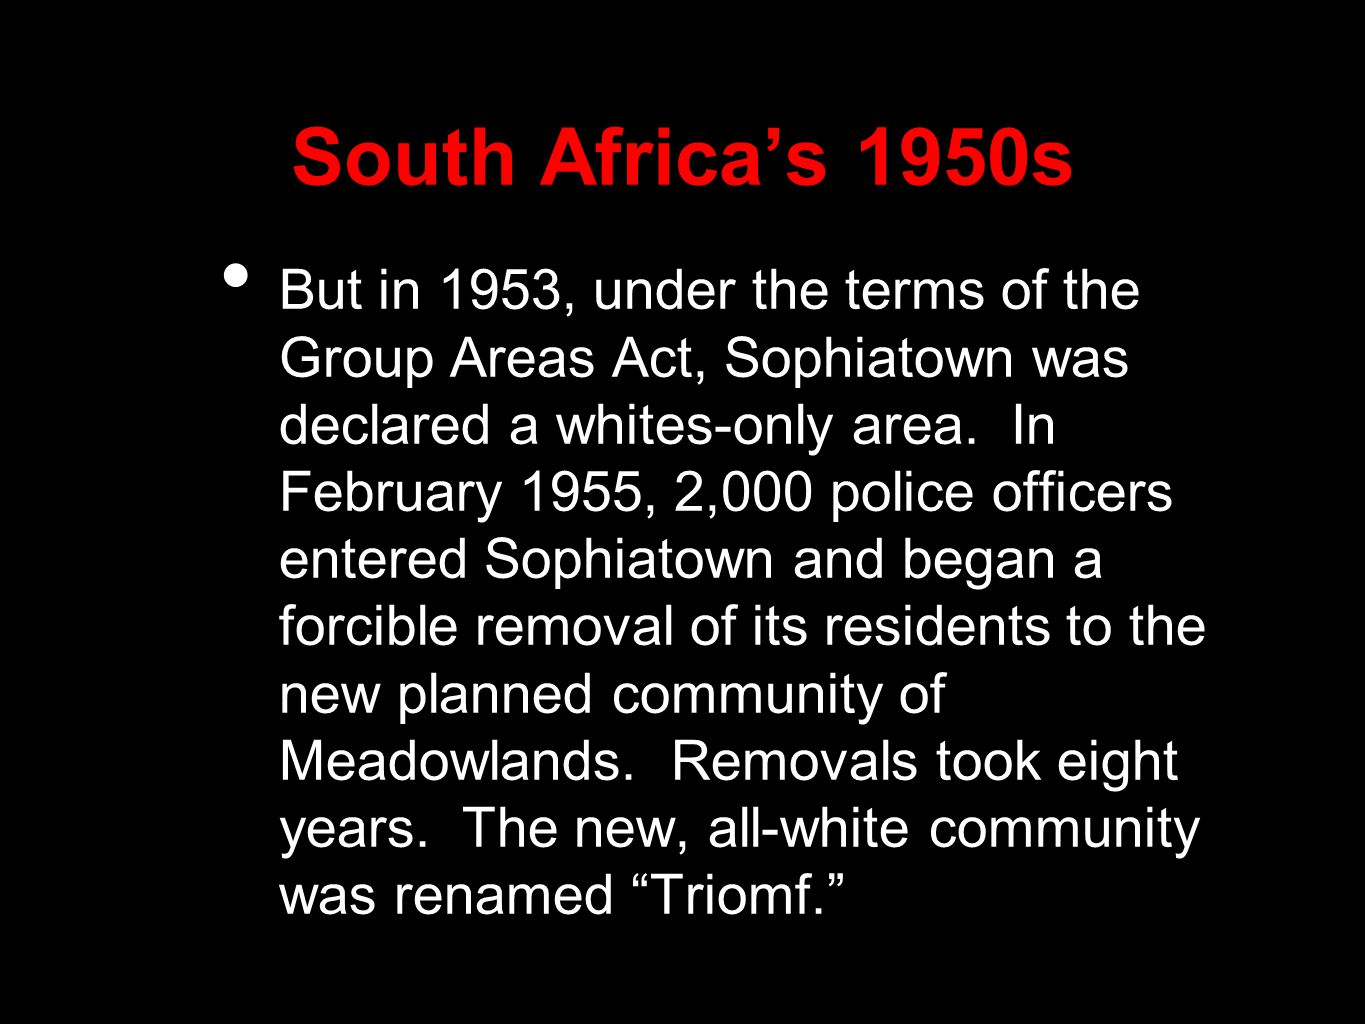 South Africa's 1950s But in 1953, under the terms of the Group Areas Act, Sophiatown was declared a whites-only area.